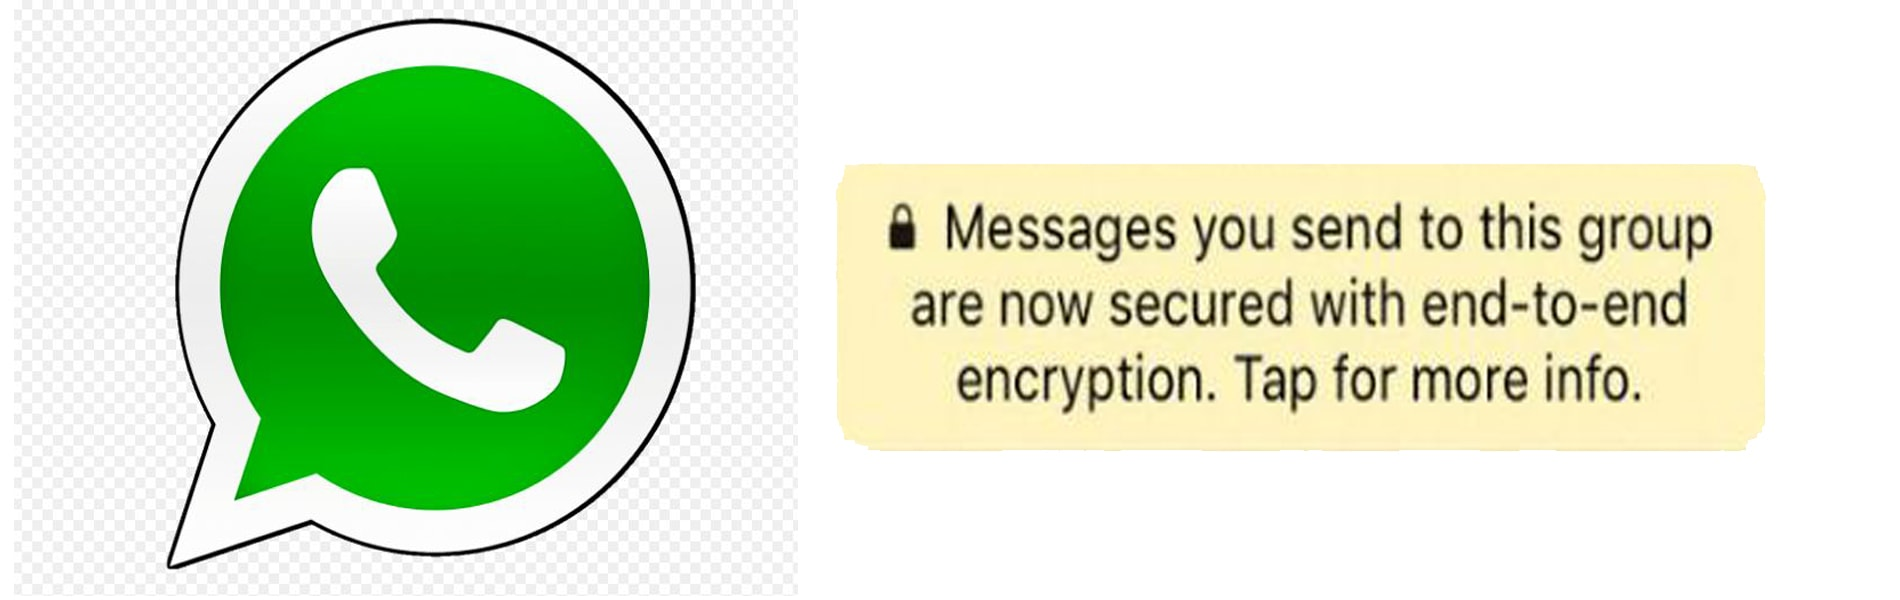 encryption in hindi